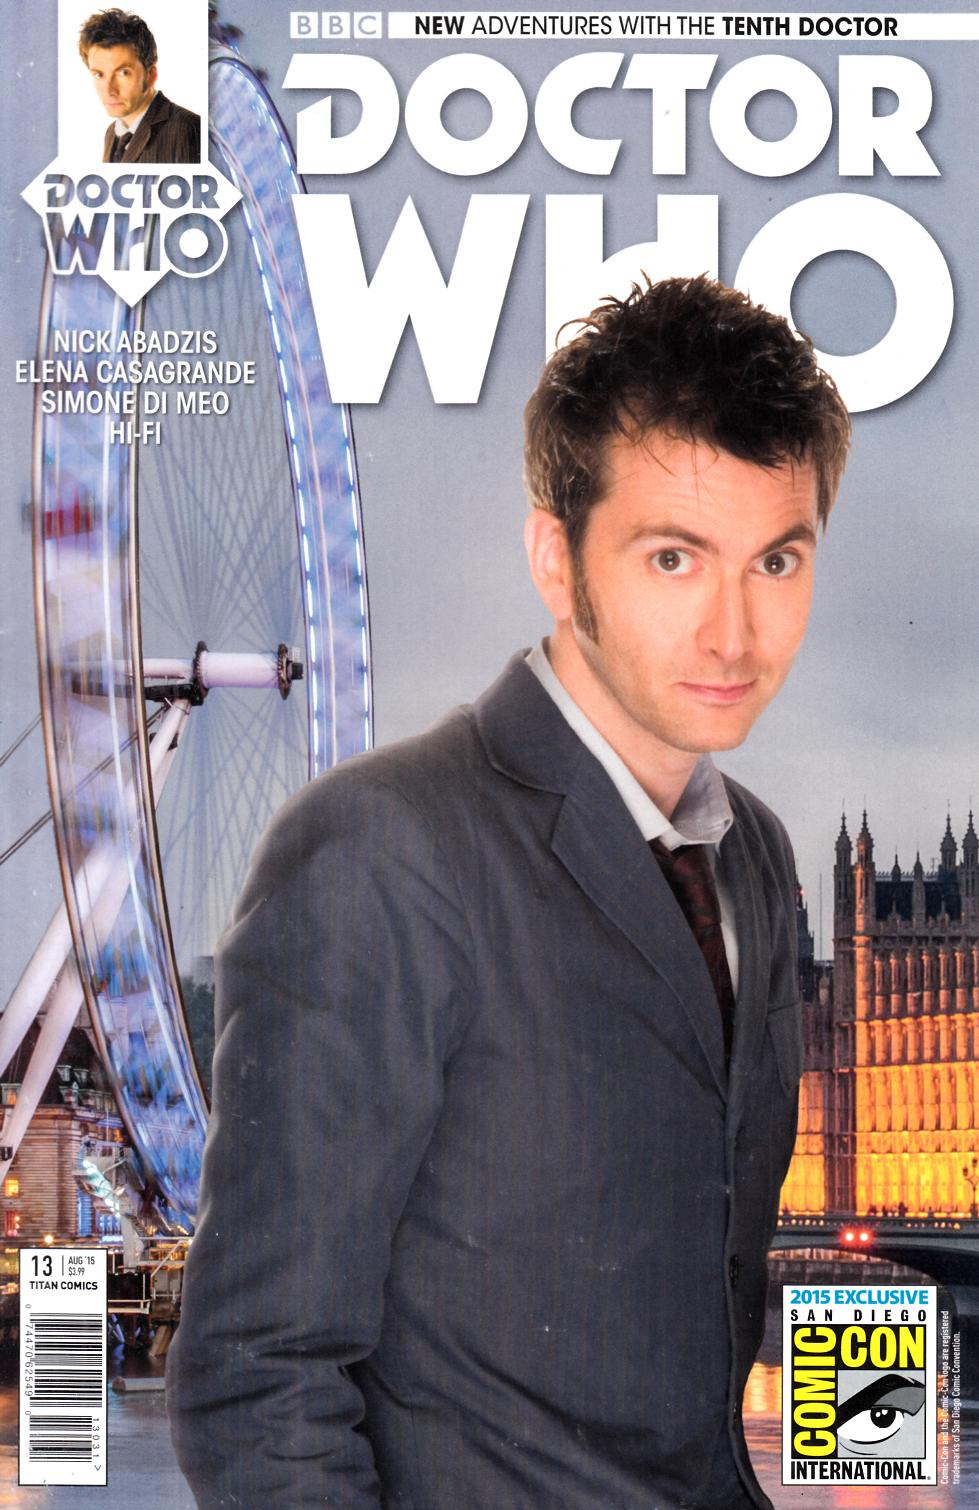 Doctor Who 10th Doctor #13 SDCC Exclusive Cover [Titan Comic]